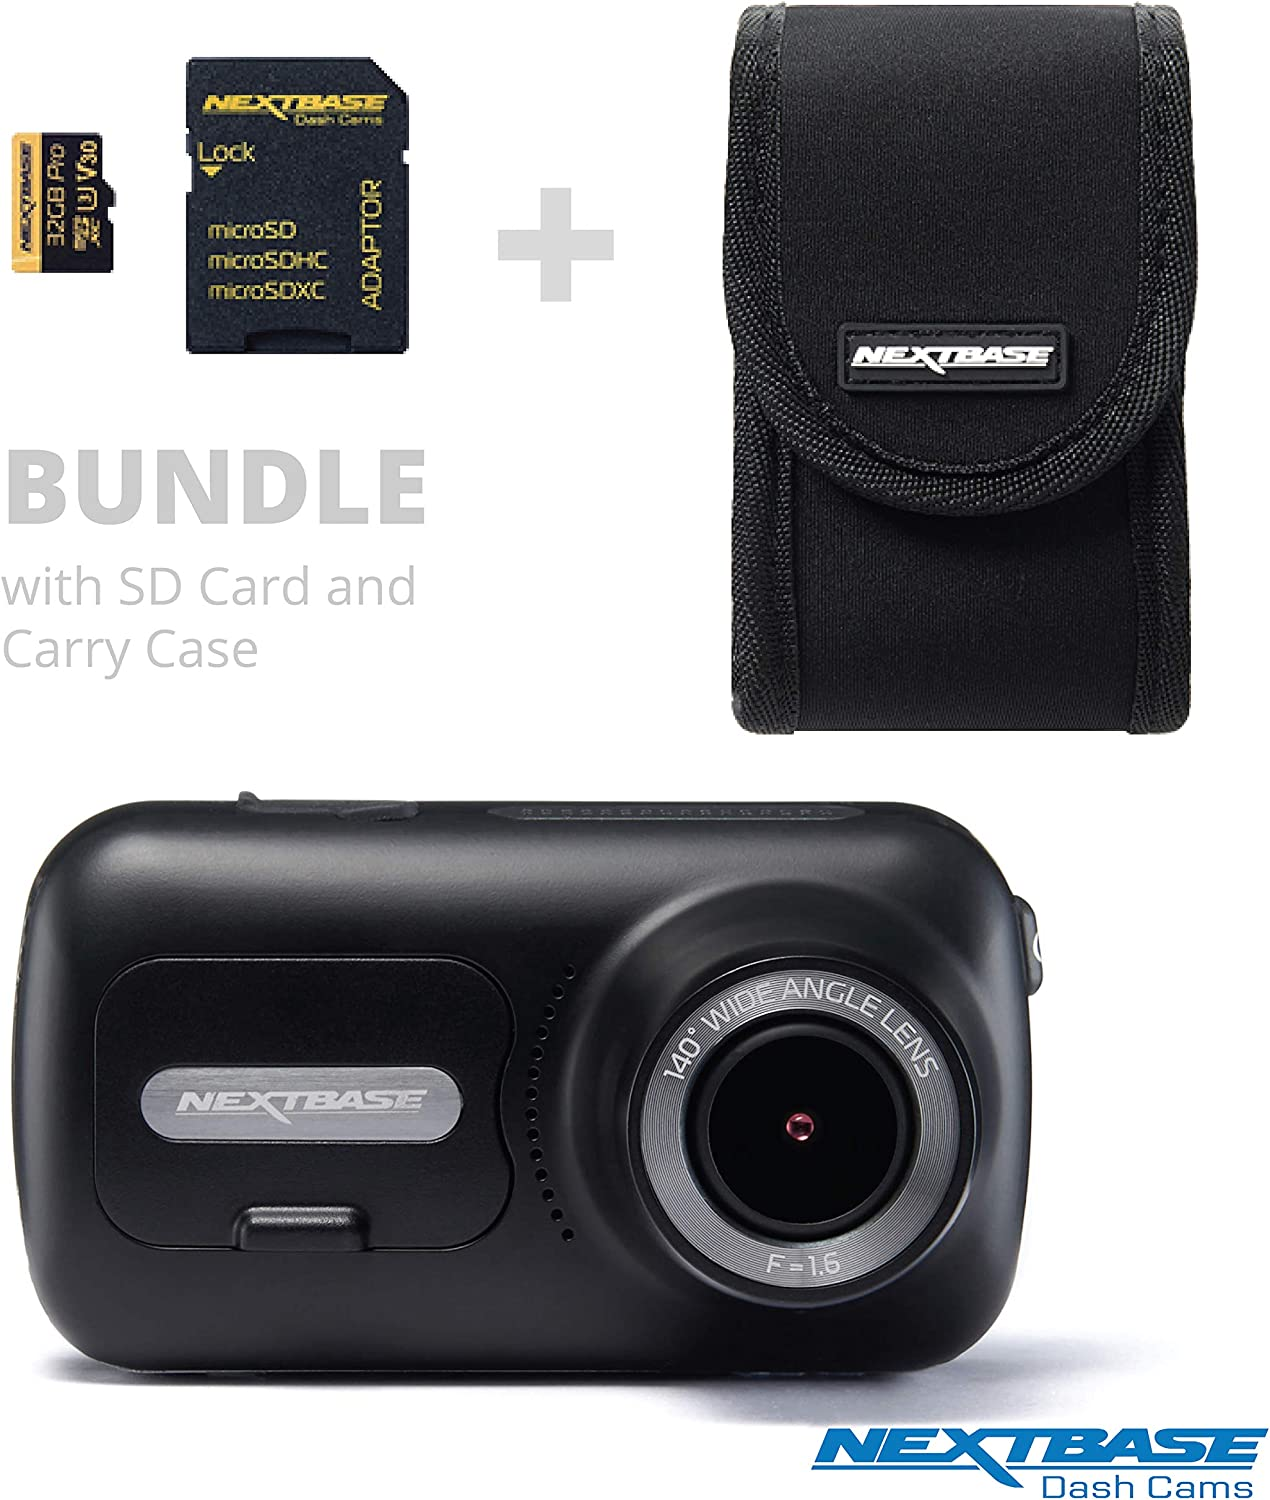 """Nextbase 322GW Dash Cam 2.5"""" HD 1080p Touch Screen (Bundle Kit with Carry Case and 32GB U3 MicroSD Card Included)"""